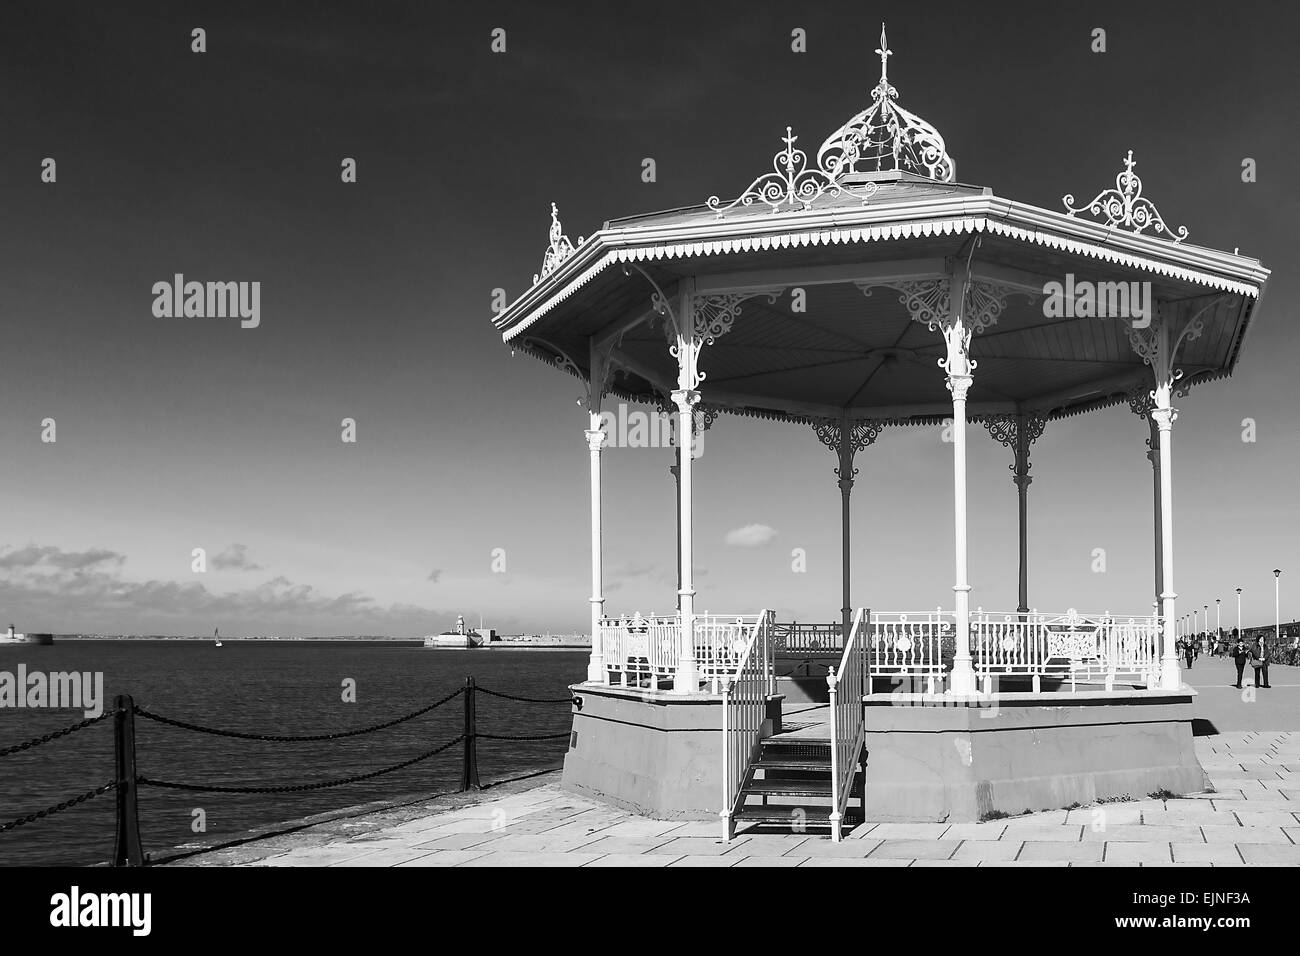 Dún Laoghaire is a suburban seaside town in County Dublin, Ireland - Stock Image